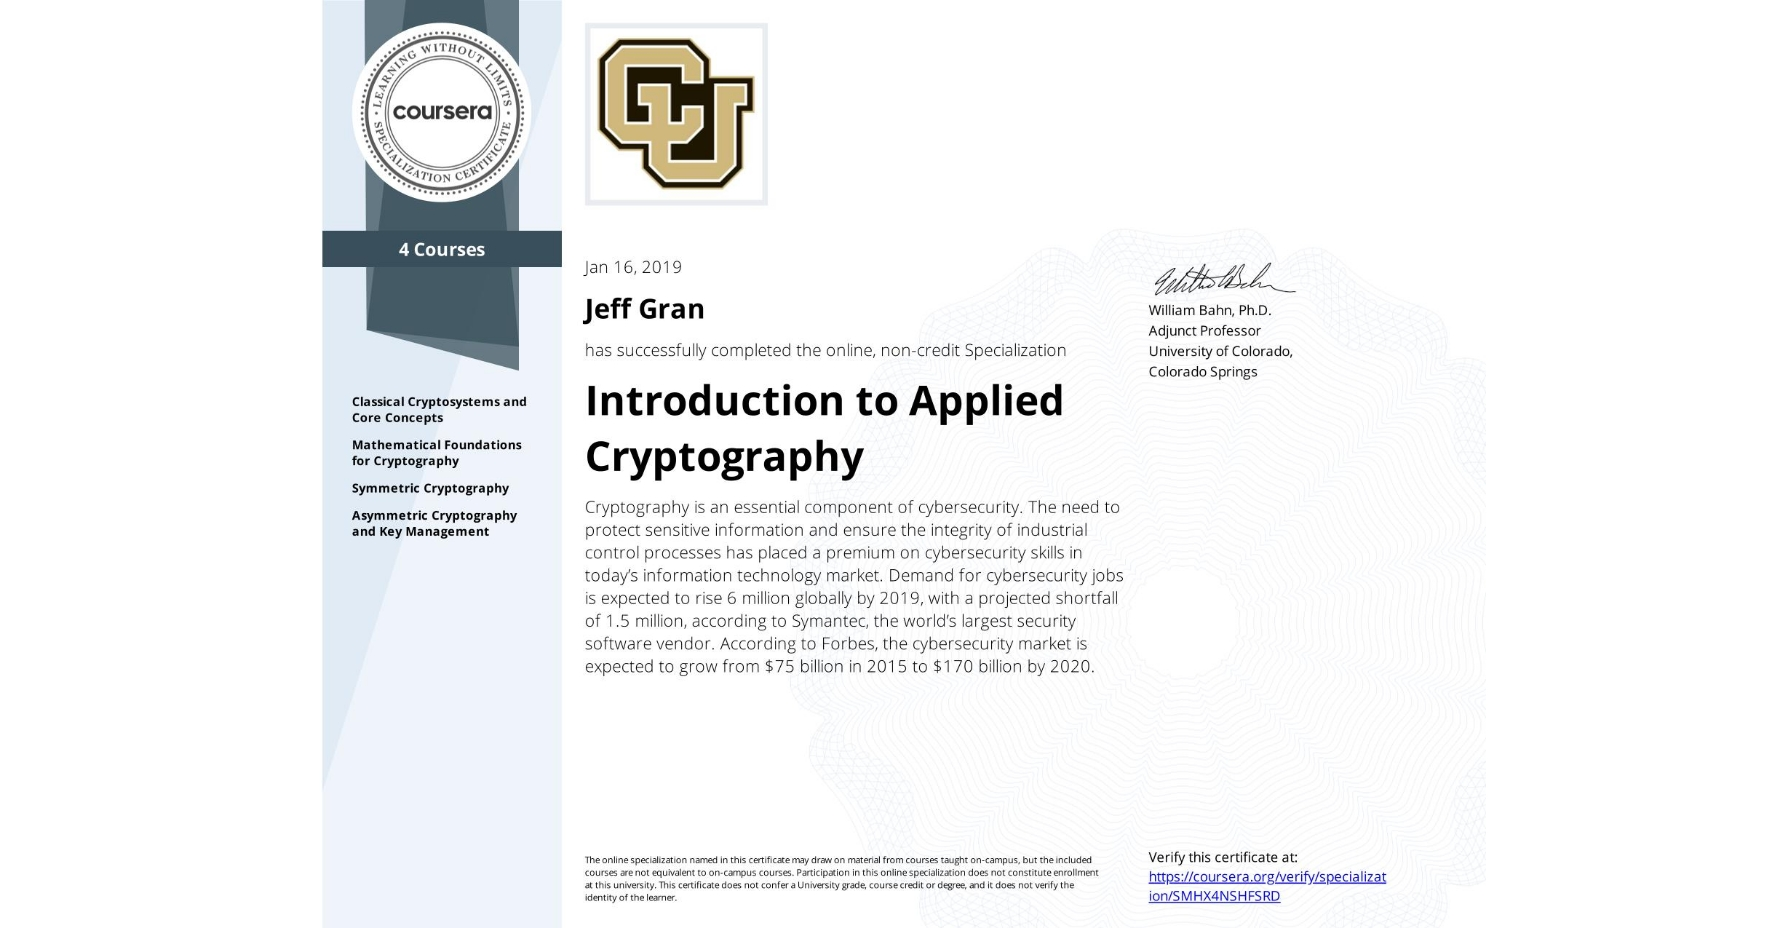 View certificate for Jeff Gran, Introduction to Applied Cryptography, offered through Coursera. Cryptography is an essential component of cybersecurity. The need to protect sensitive information and ensure the integrity of industrial control processes has placed a premium on cybersecurity skills in today's information technology market. Demand for cybersecurity jobs is expected to rise 6 million globally by 2019, with a projected shortfall of 1.5 million, according to Symantec, the world's largest security software vendor. According to Forbes, the cybersecurity market is expected to grow from $75 billion in 2015 to $170 billion by 2020.